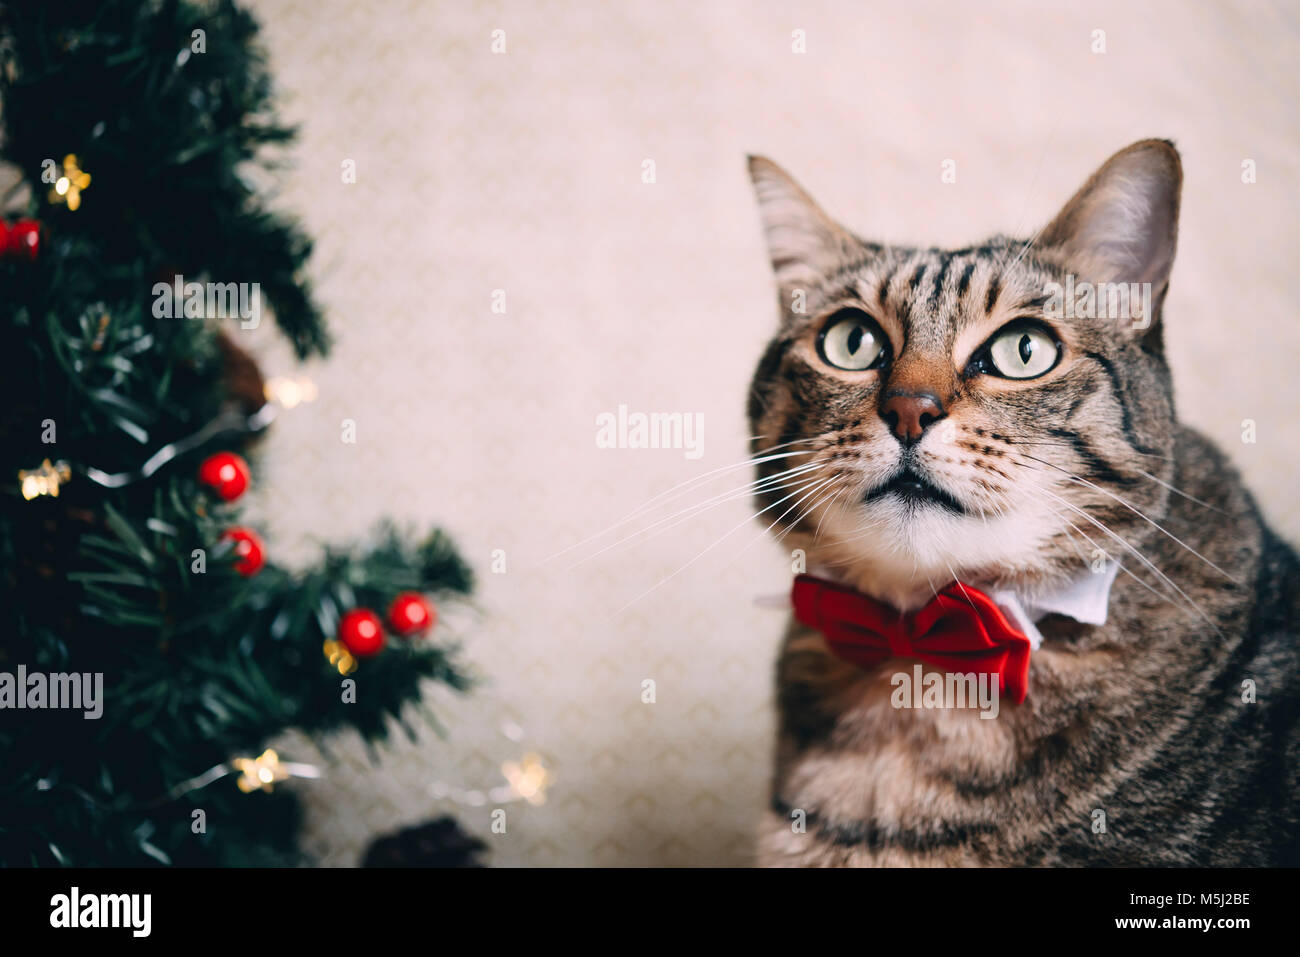 Portrait of tabby cat with collar and red bow tie at Christmas time - Stock Image